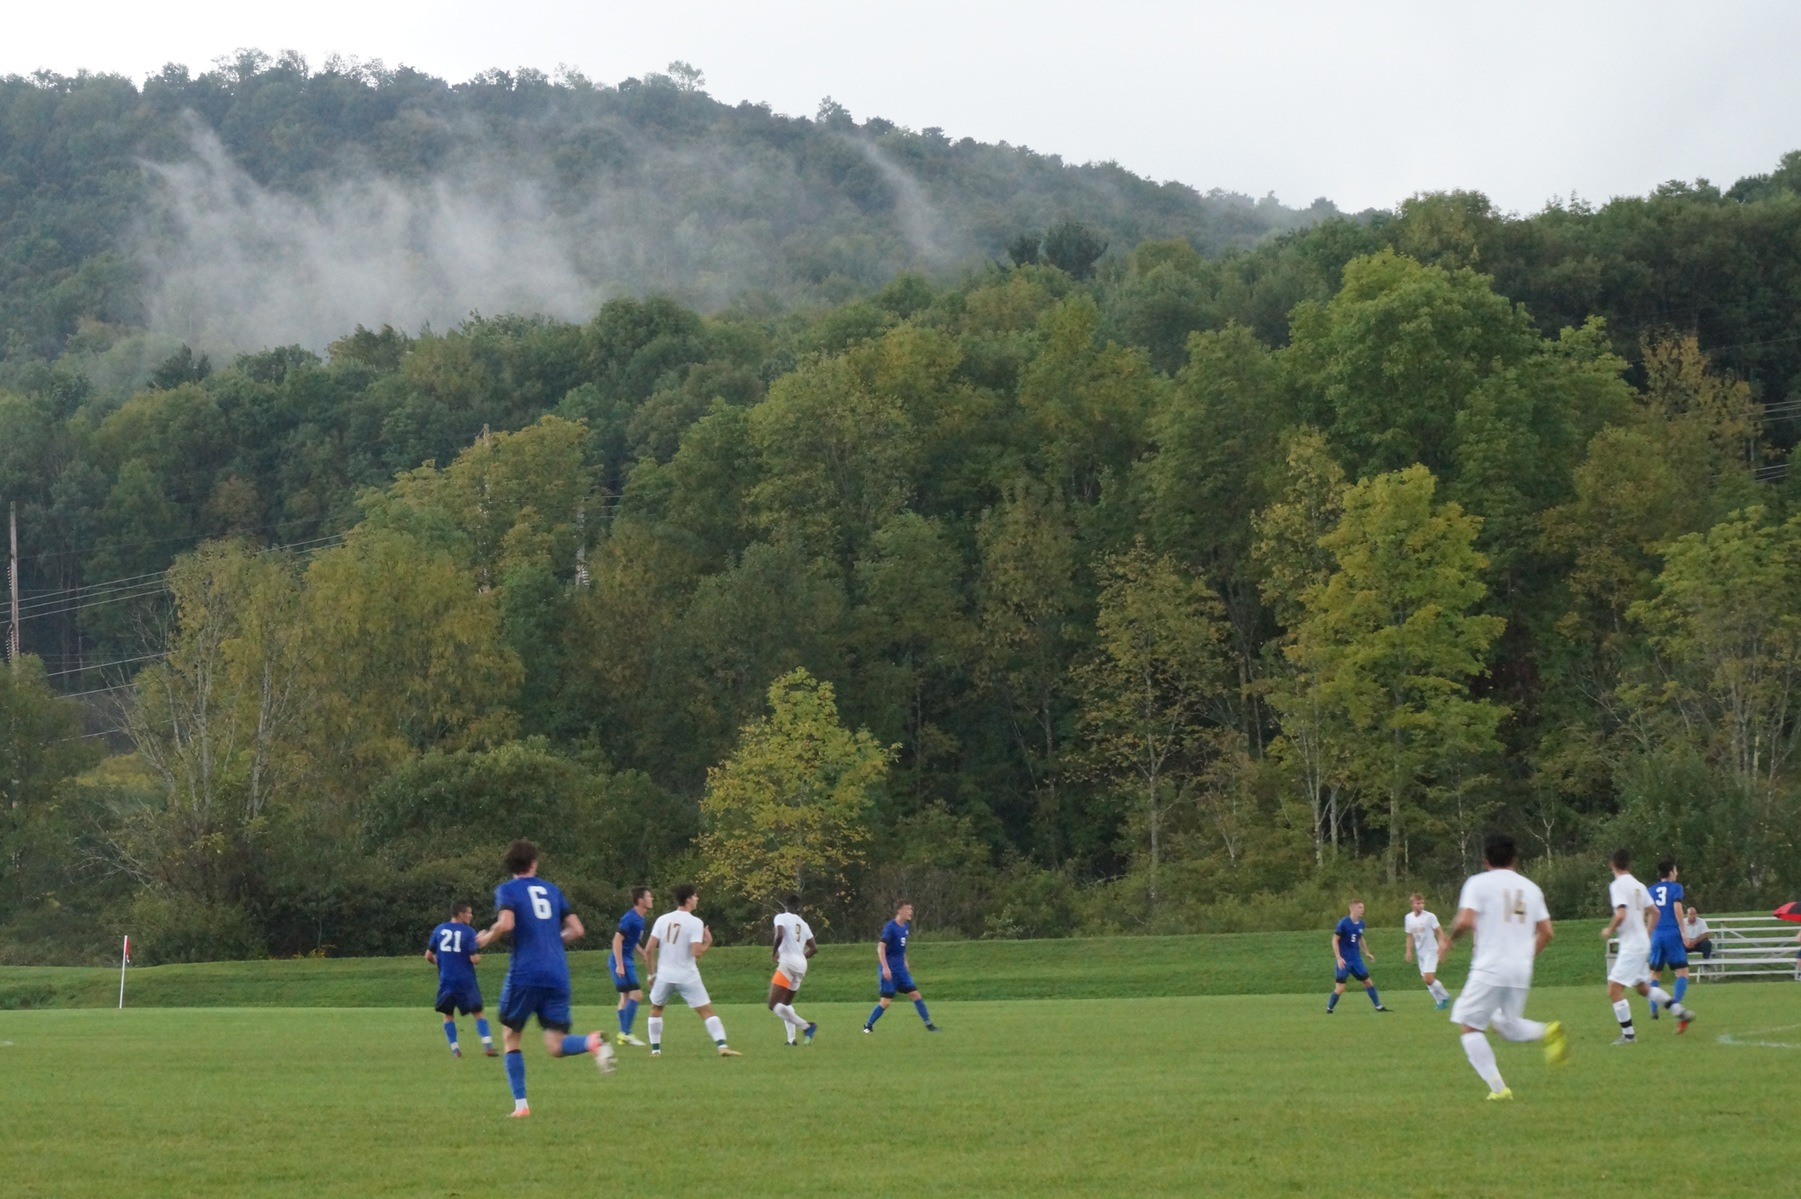 Men's Soccer Takes 1-0 Defeat at Hands of Clarks Summit